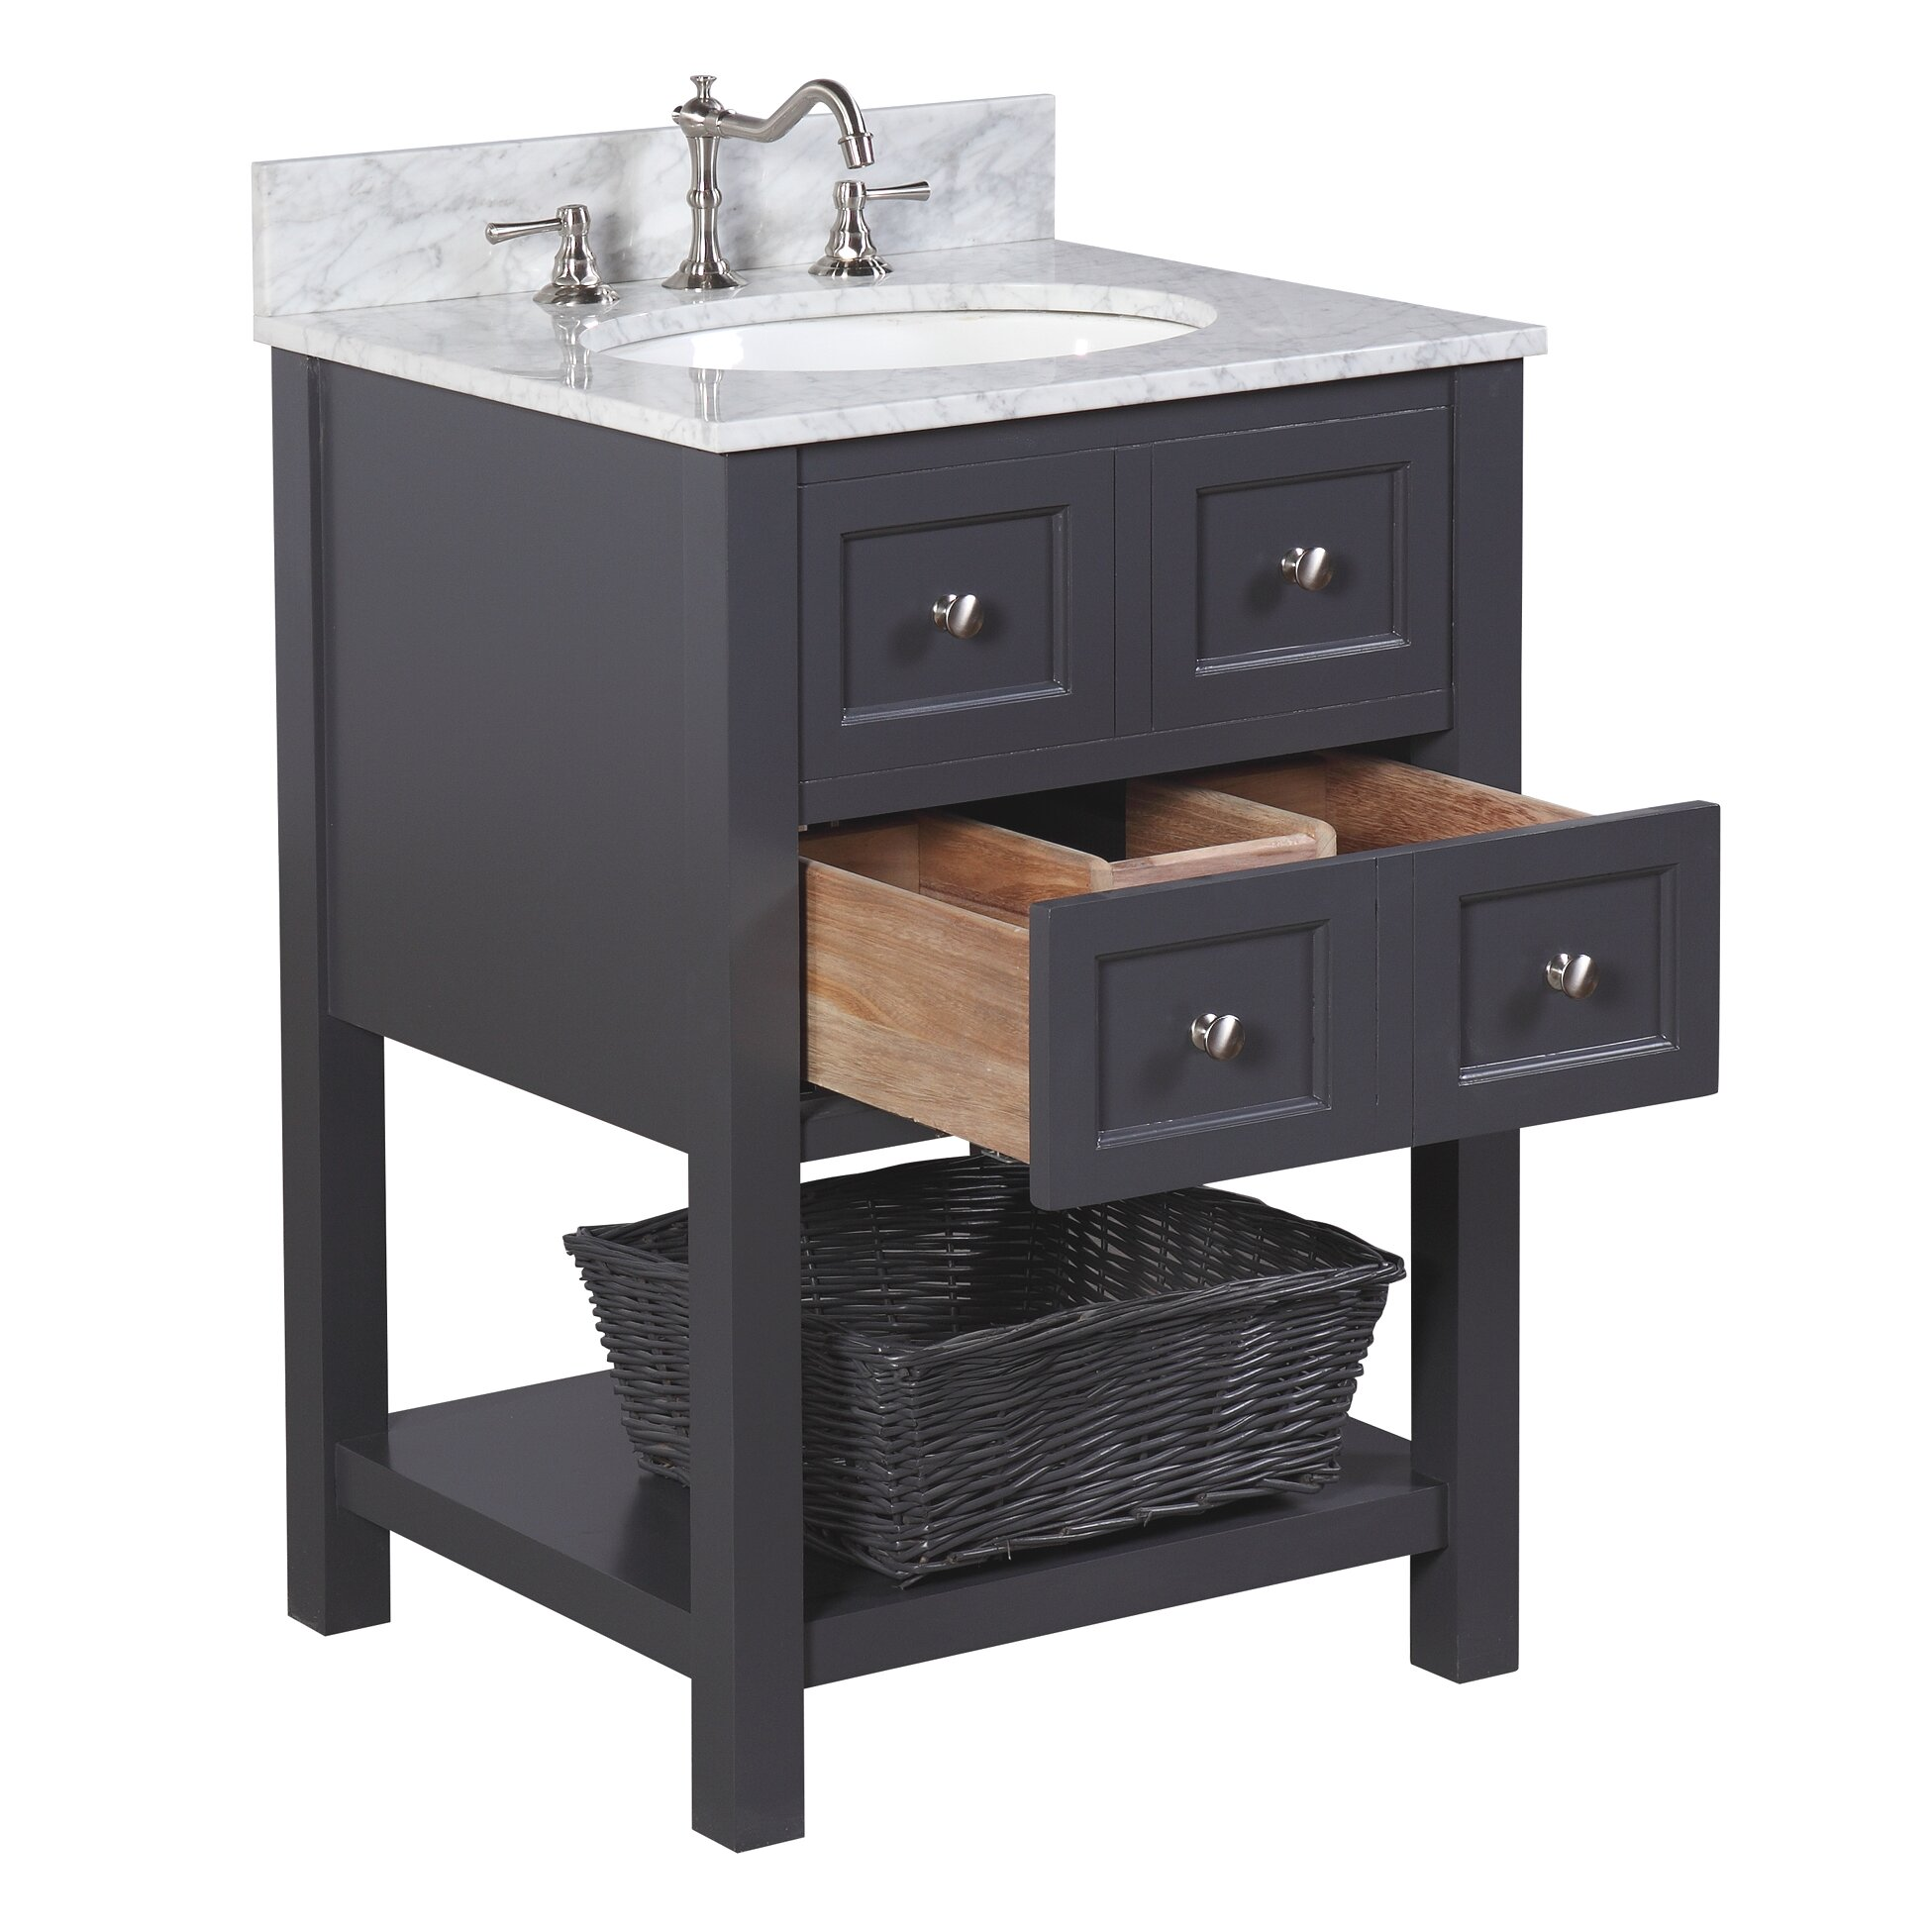 "KBC New Yorker 24"" Single Bathroom Vanity Set & Reviews"